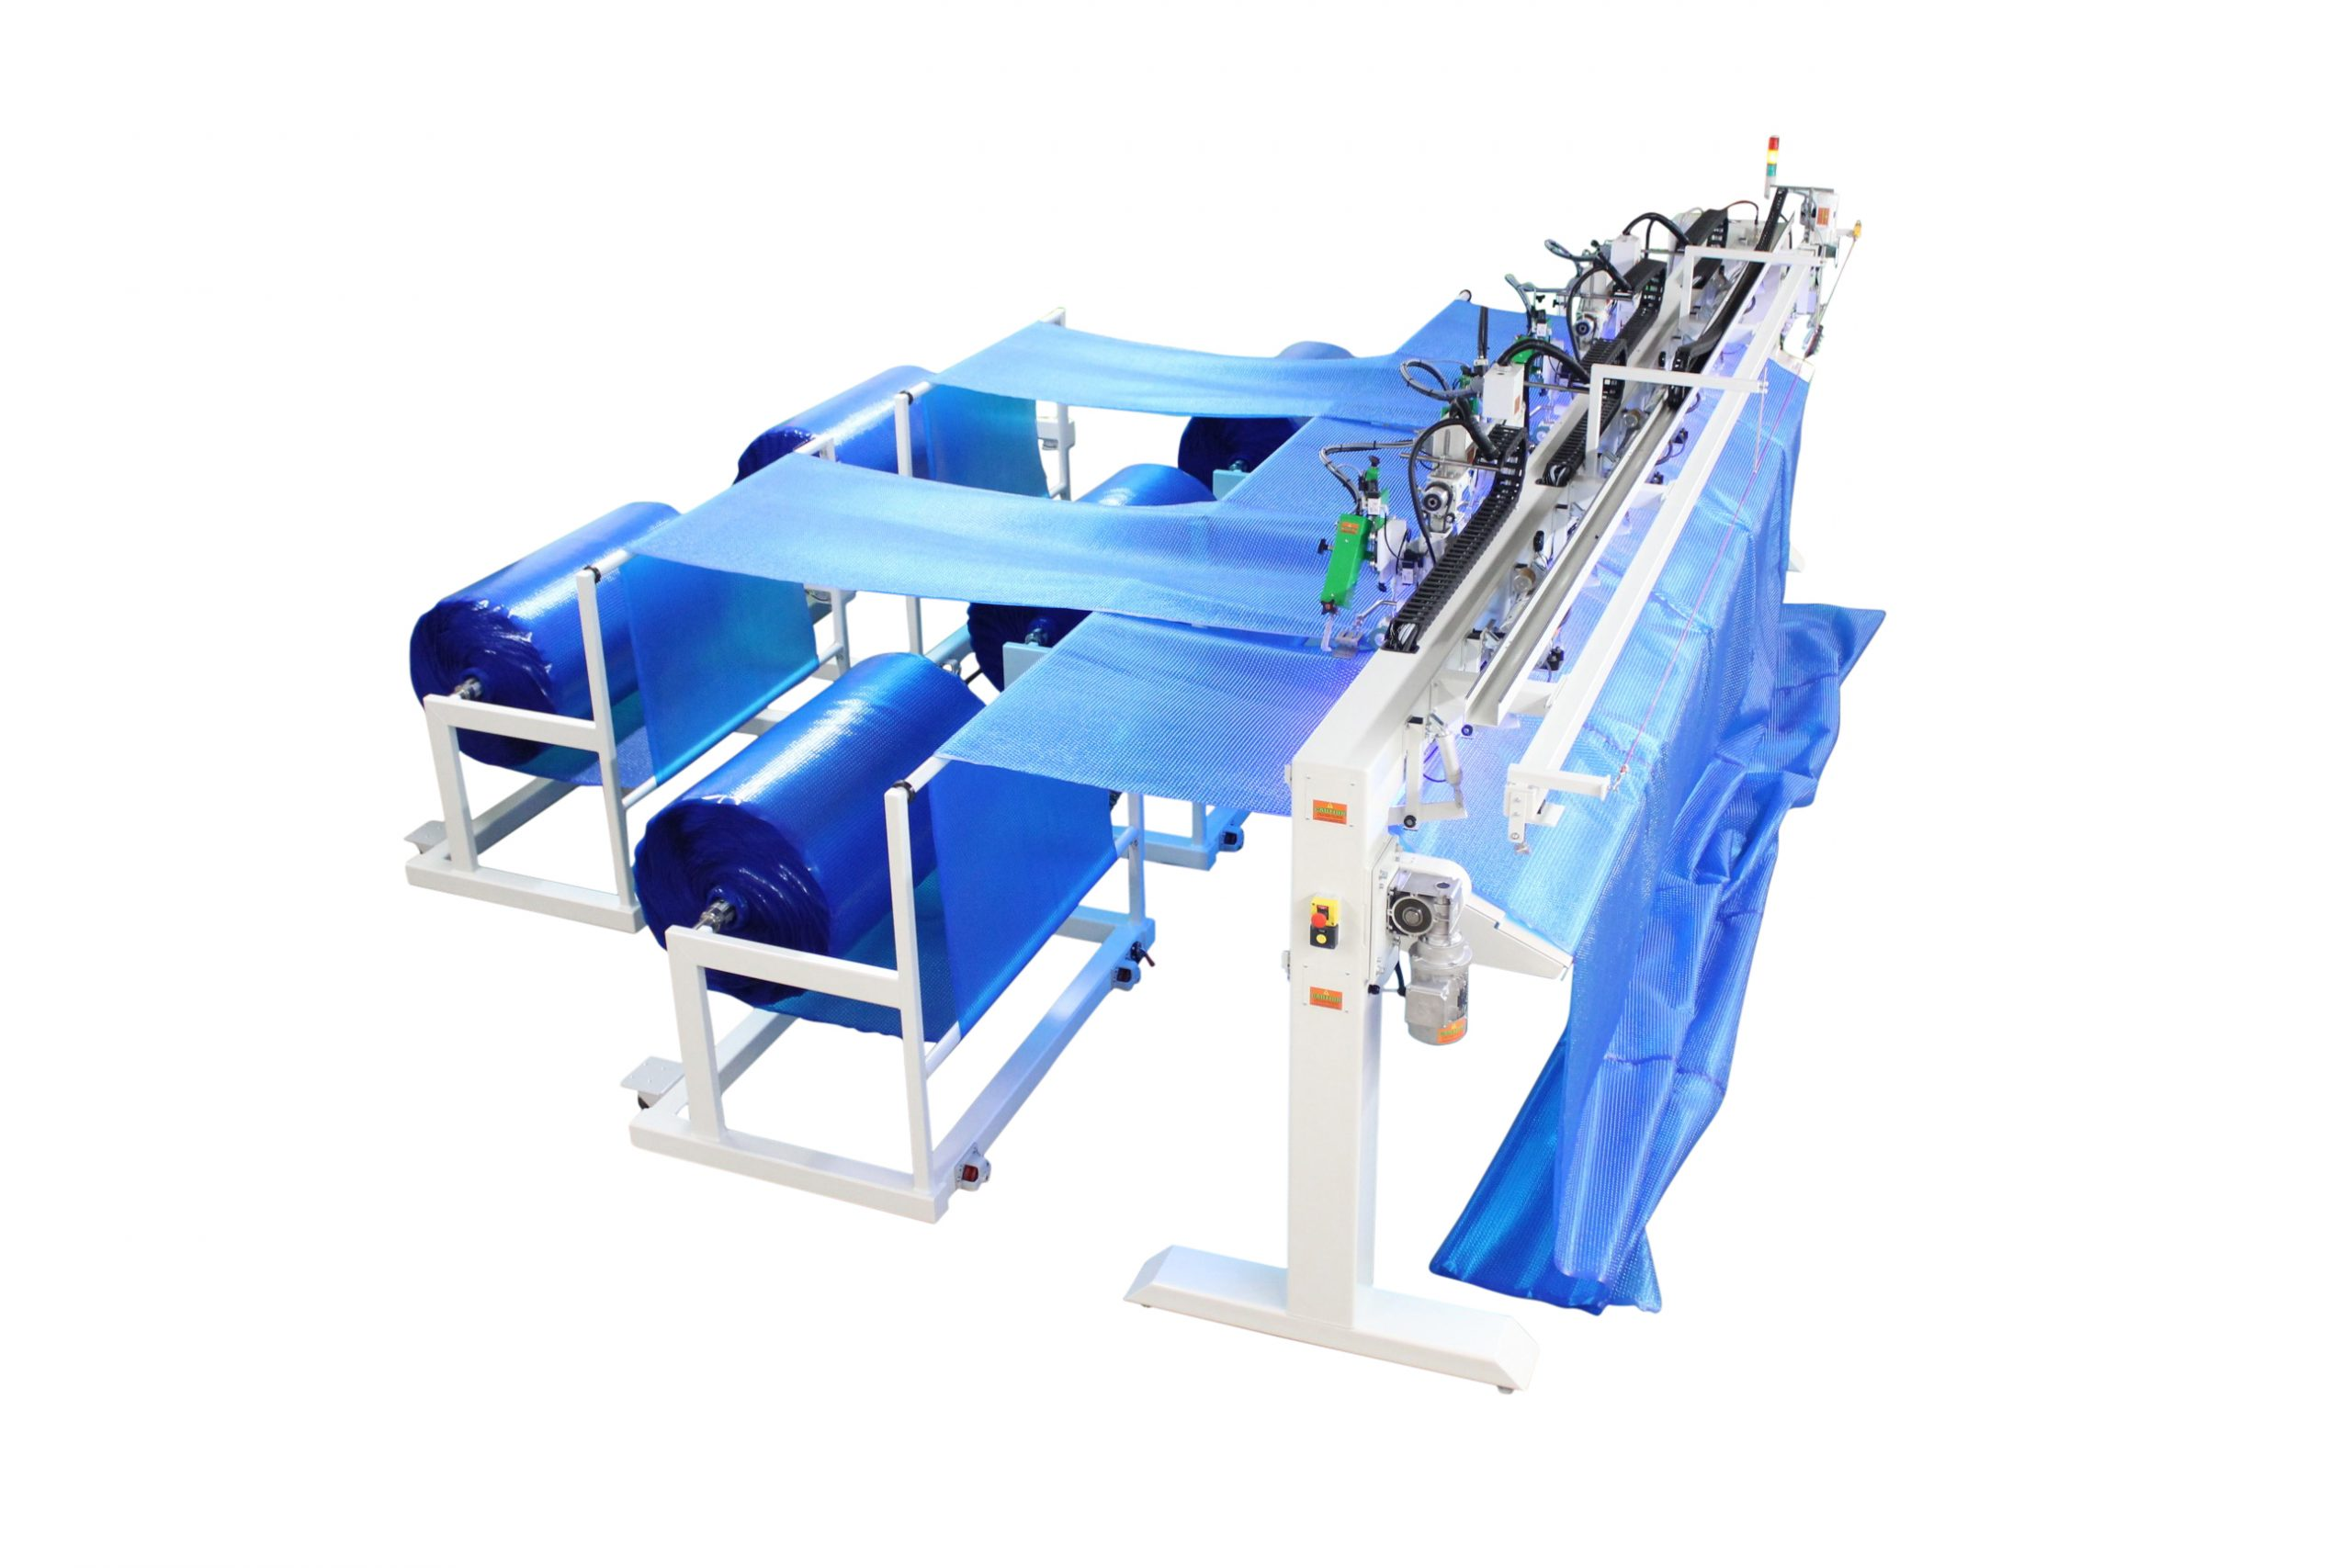 M-100 -Automated Solution for any Production Process